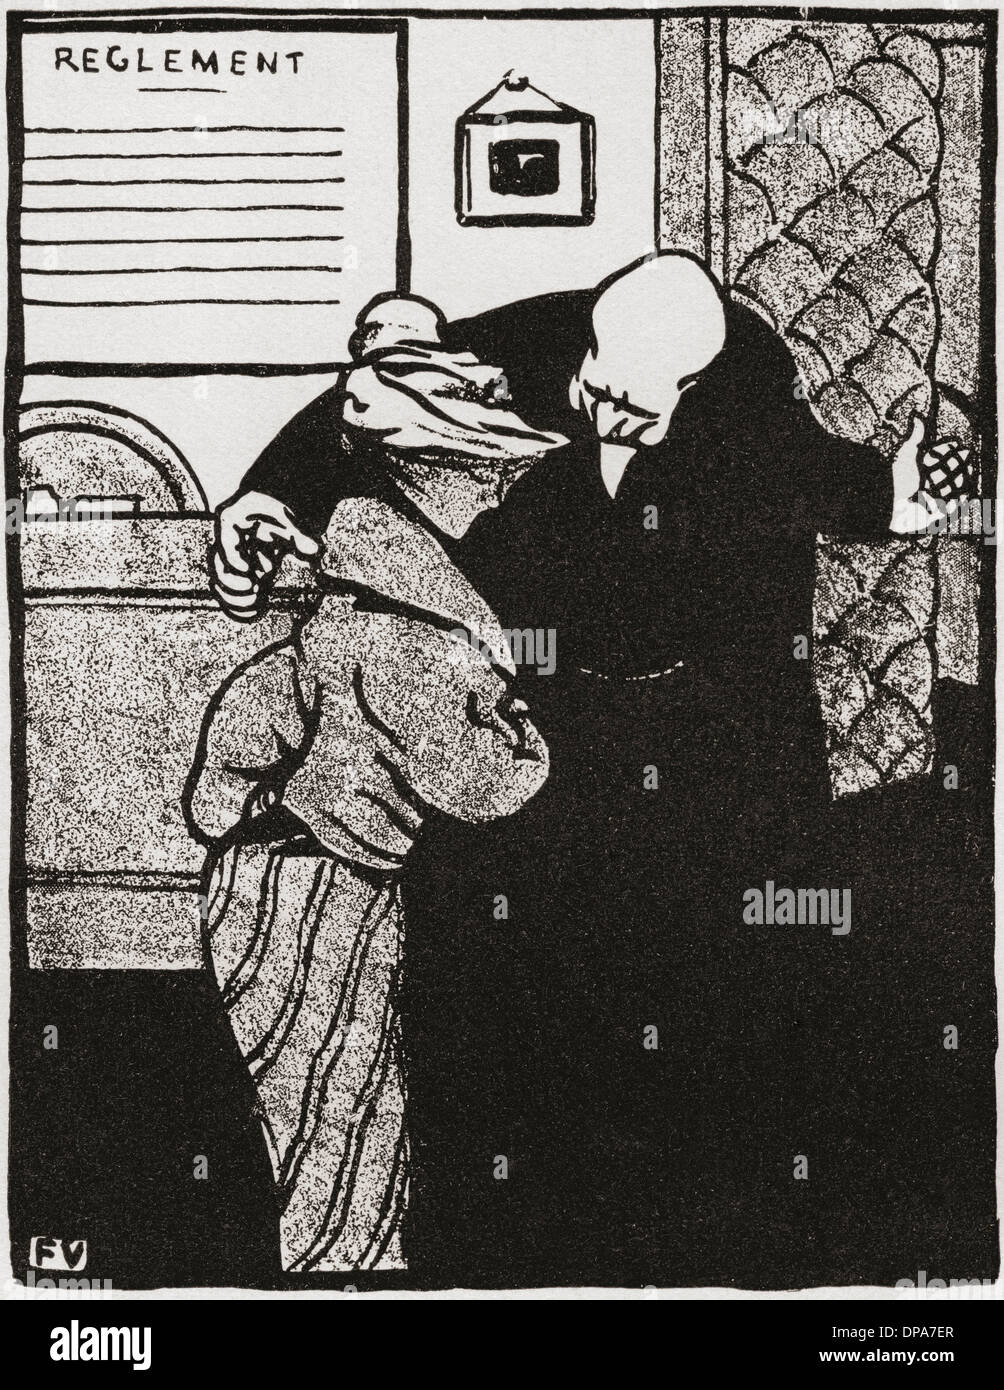 A worthy man ushers a young woman into his office, after a work by Felix Vallotton from 'Crimes and Punishments'. - Stock Image